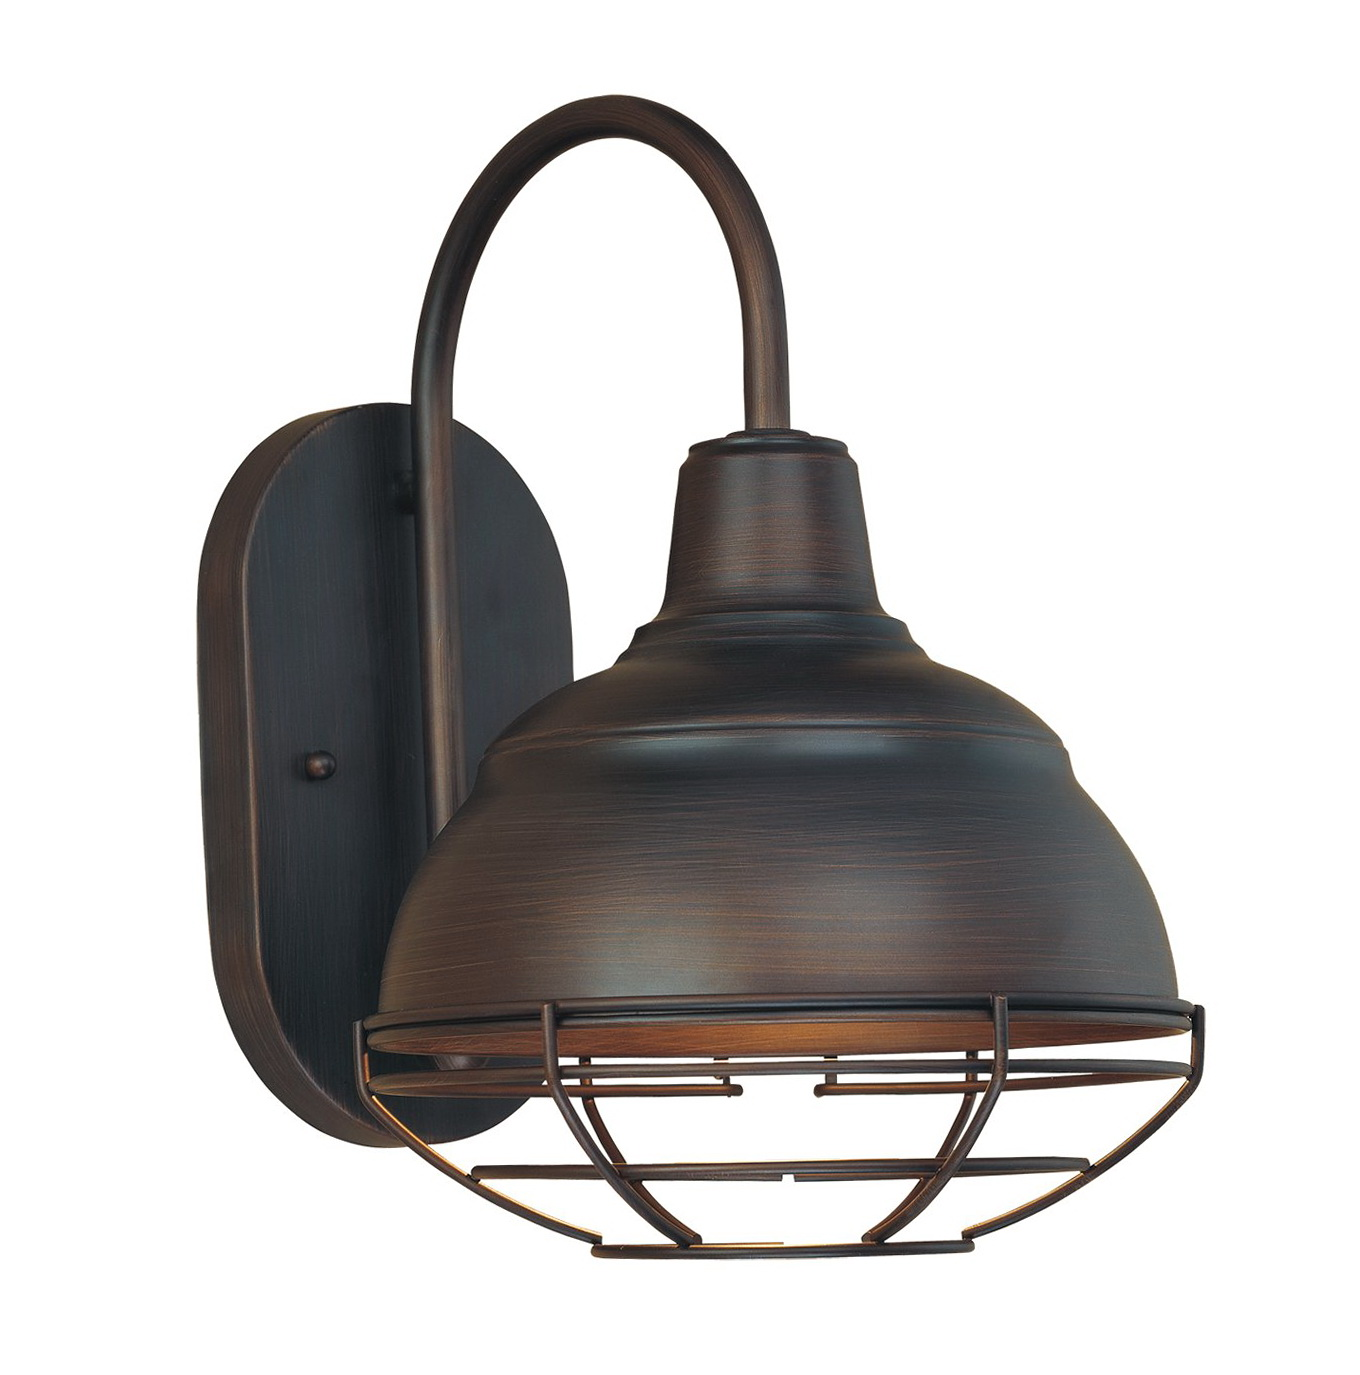 [industrial wall sconce lighting]